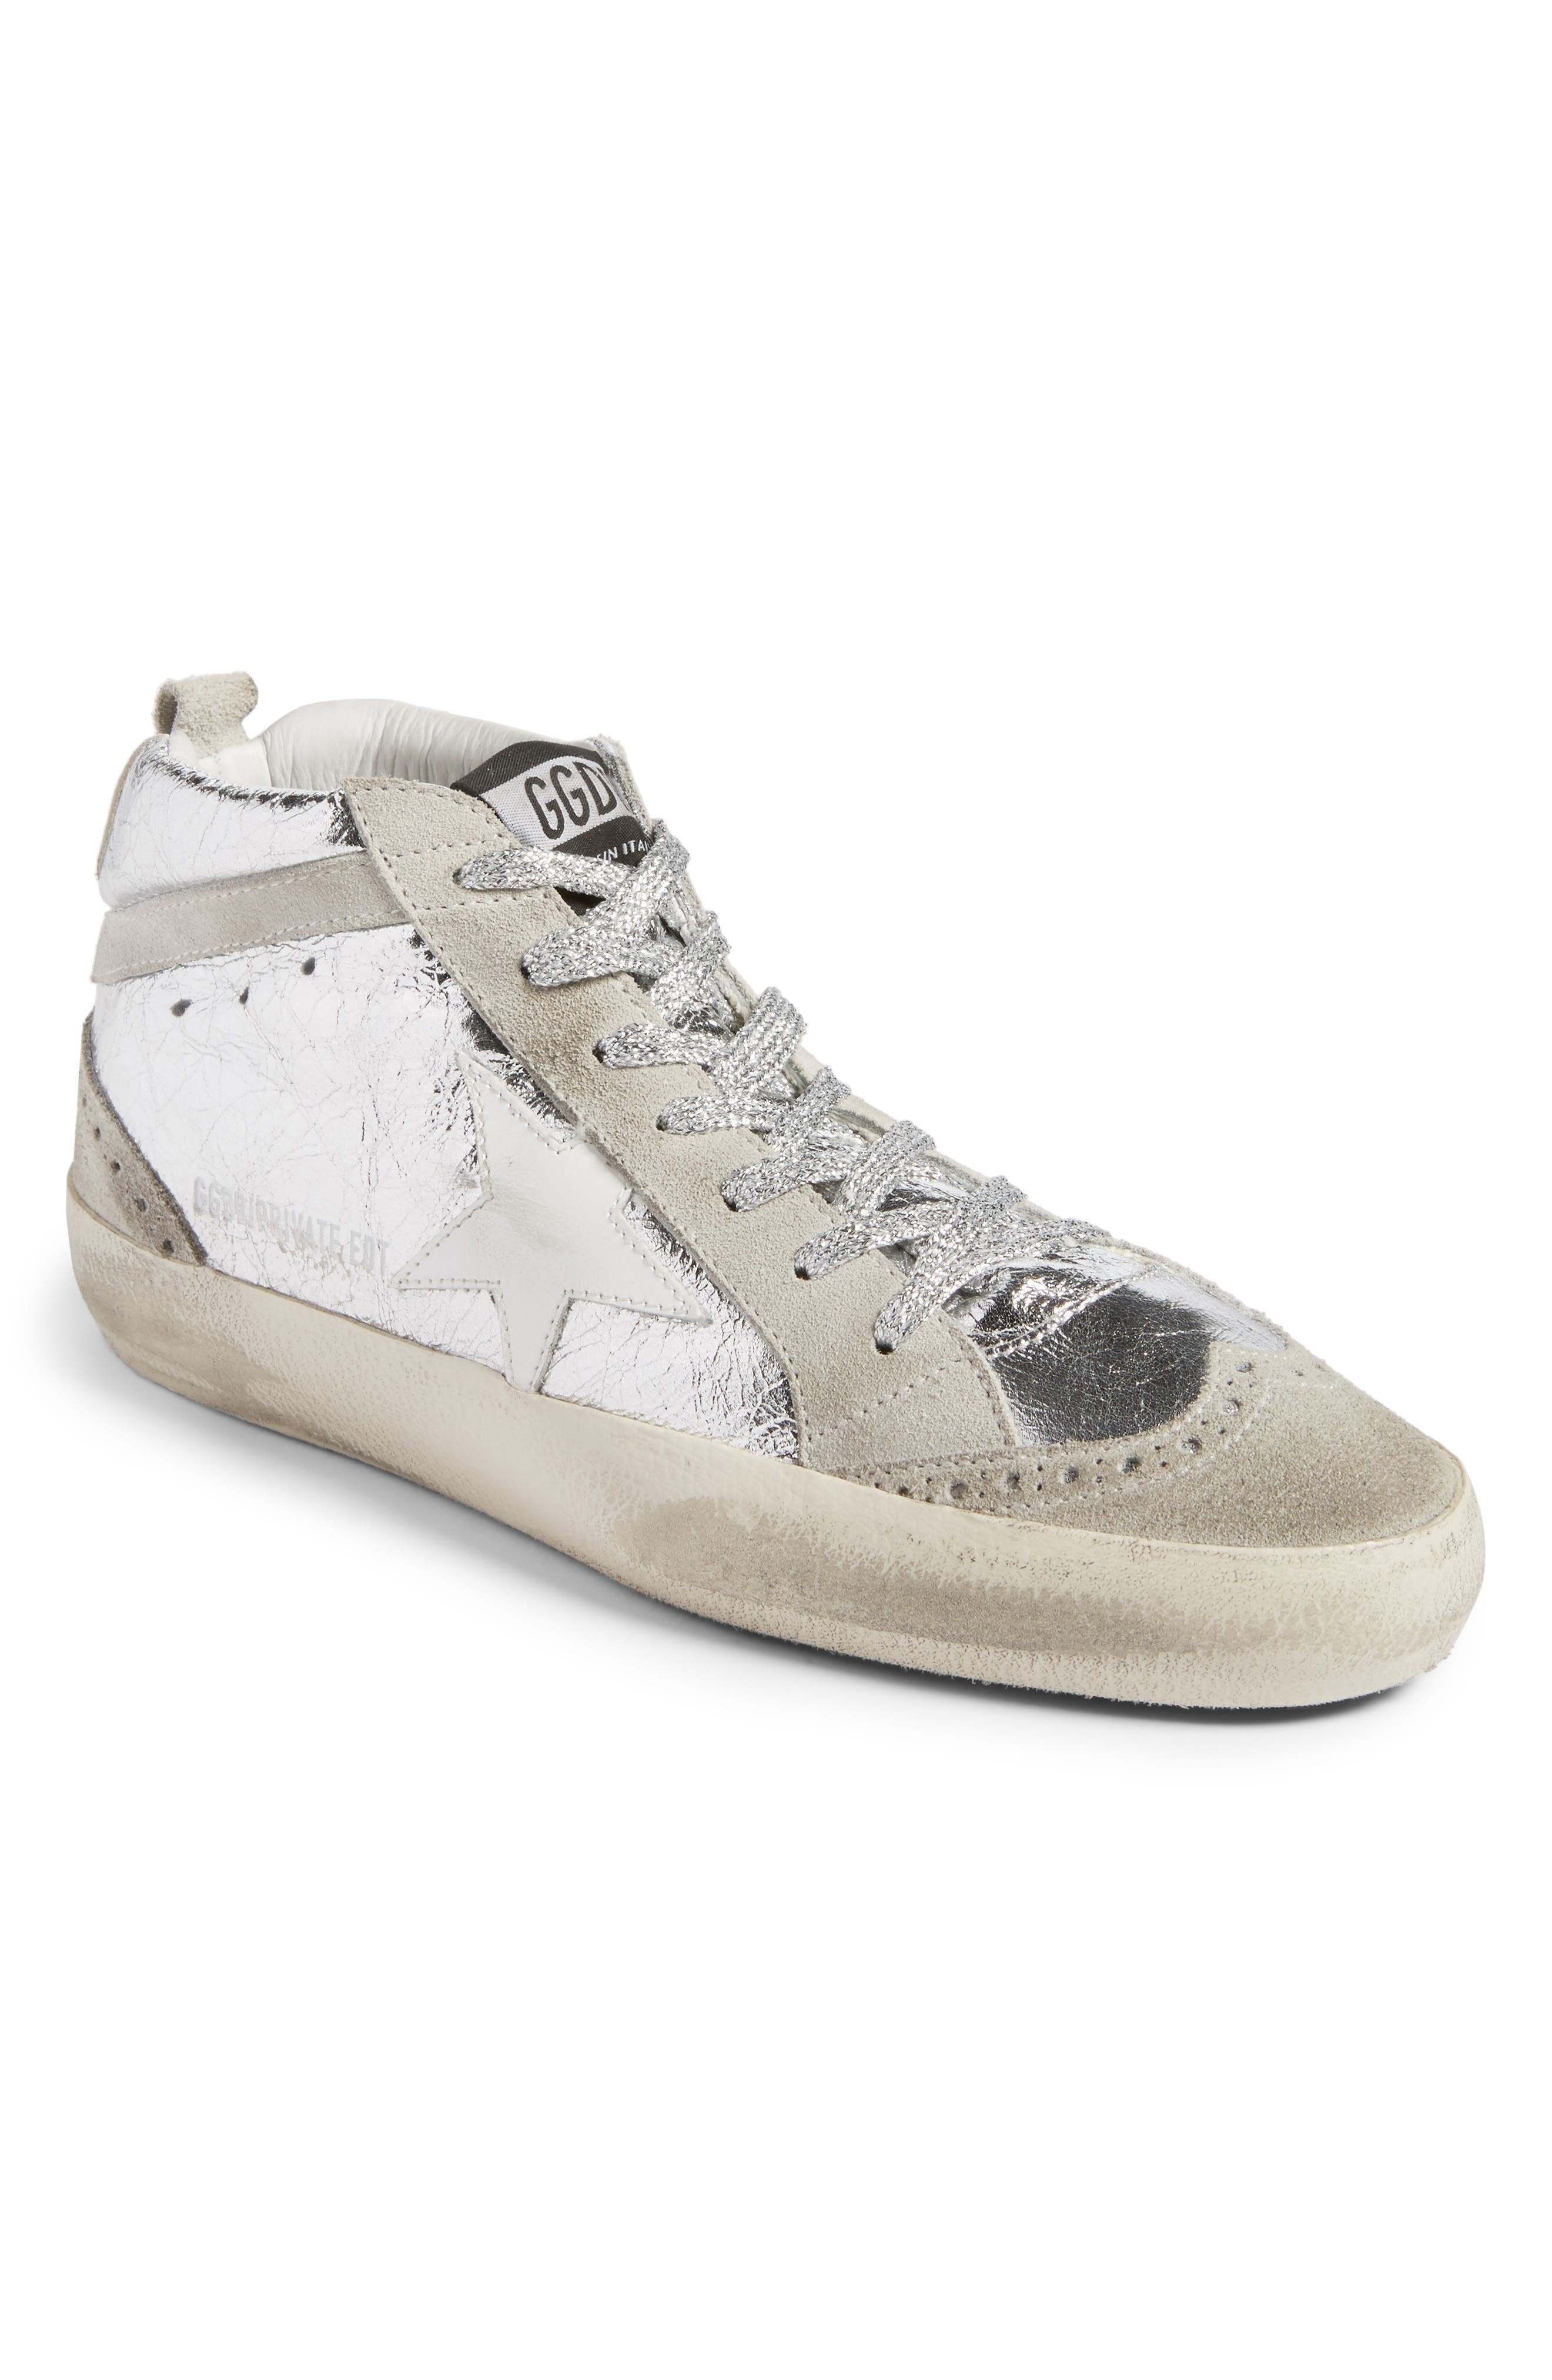 Golden Goose Mid Star Metallic Sneaker (Women)